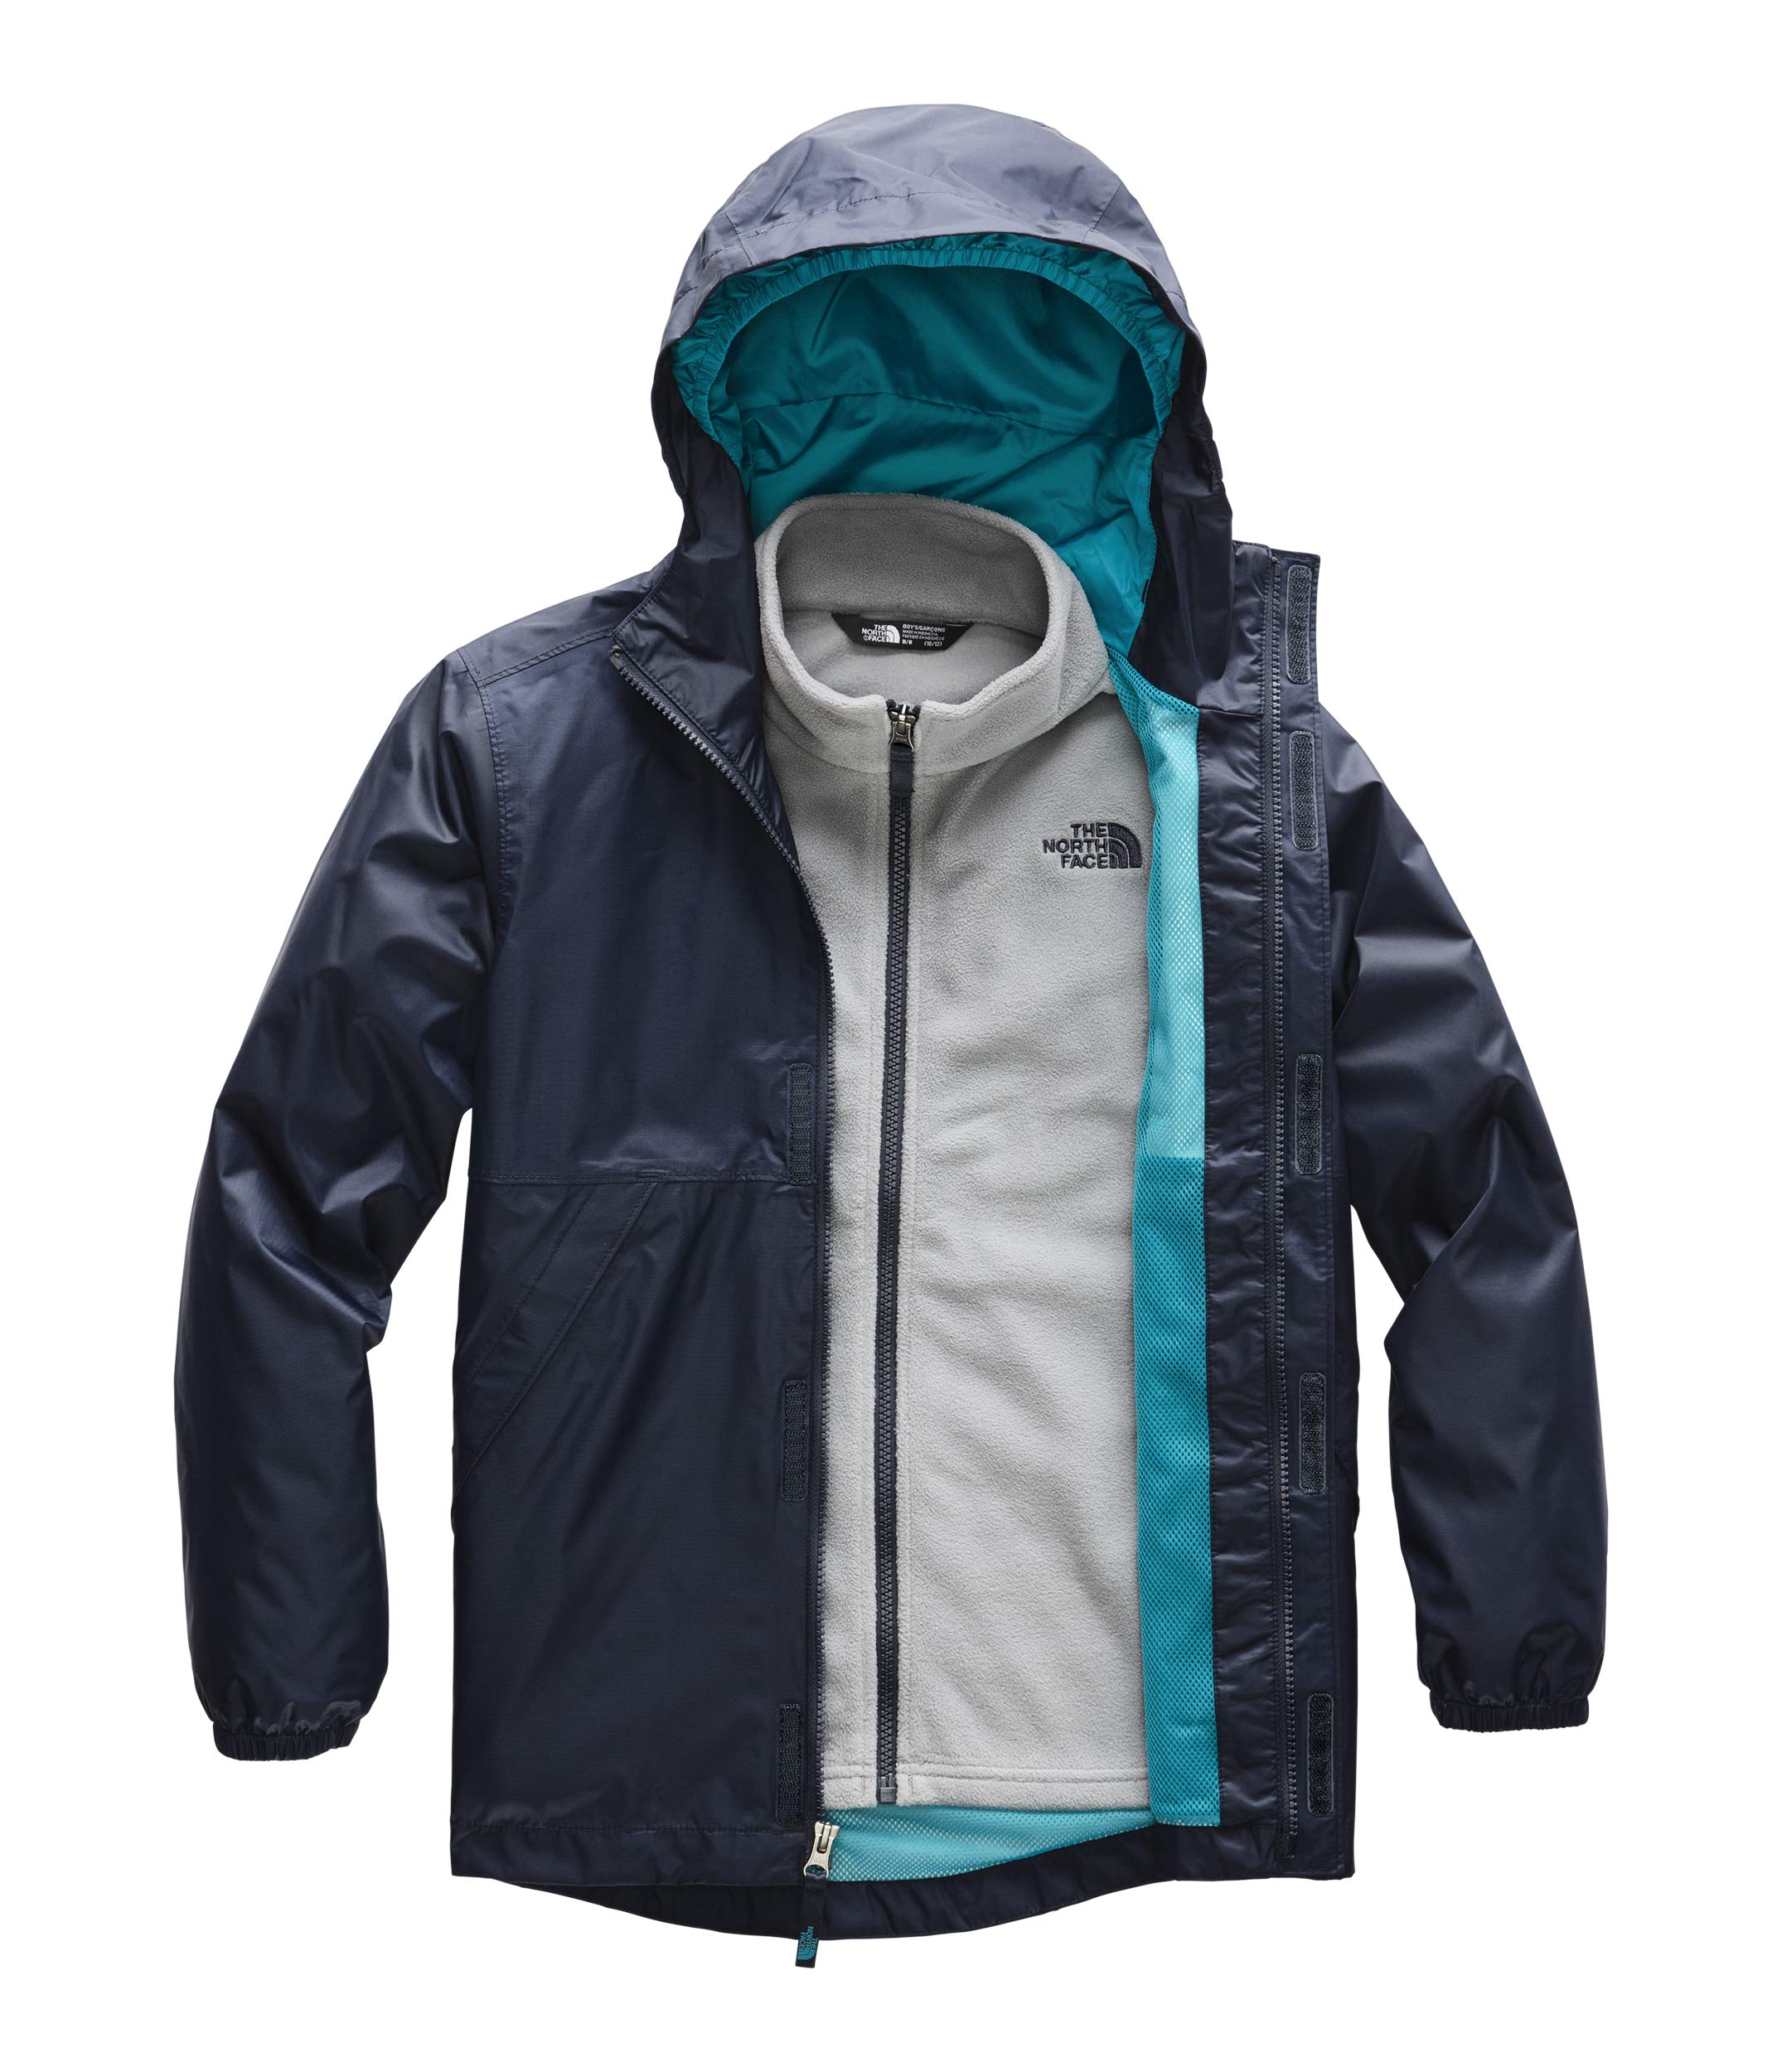 The North Face Boys' Stormy Rain Triclimate, Cosmic Blue, Small